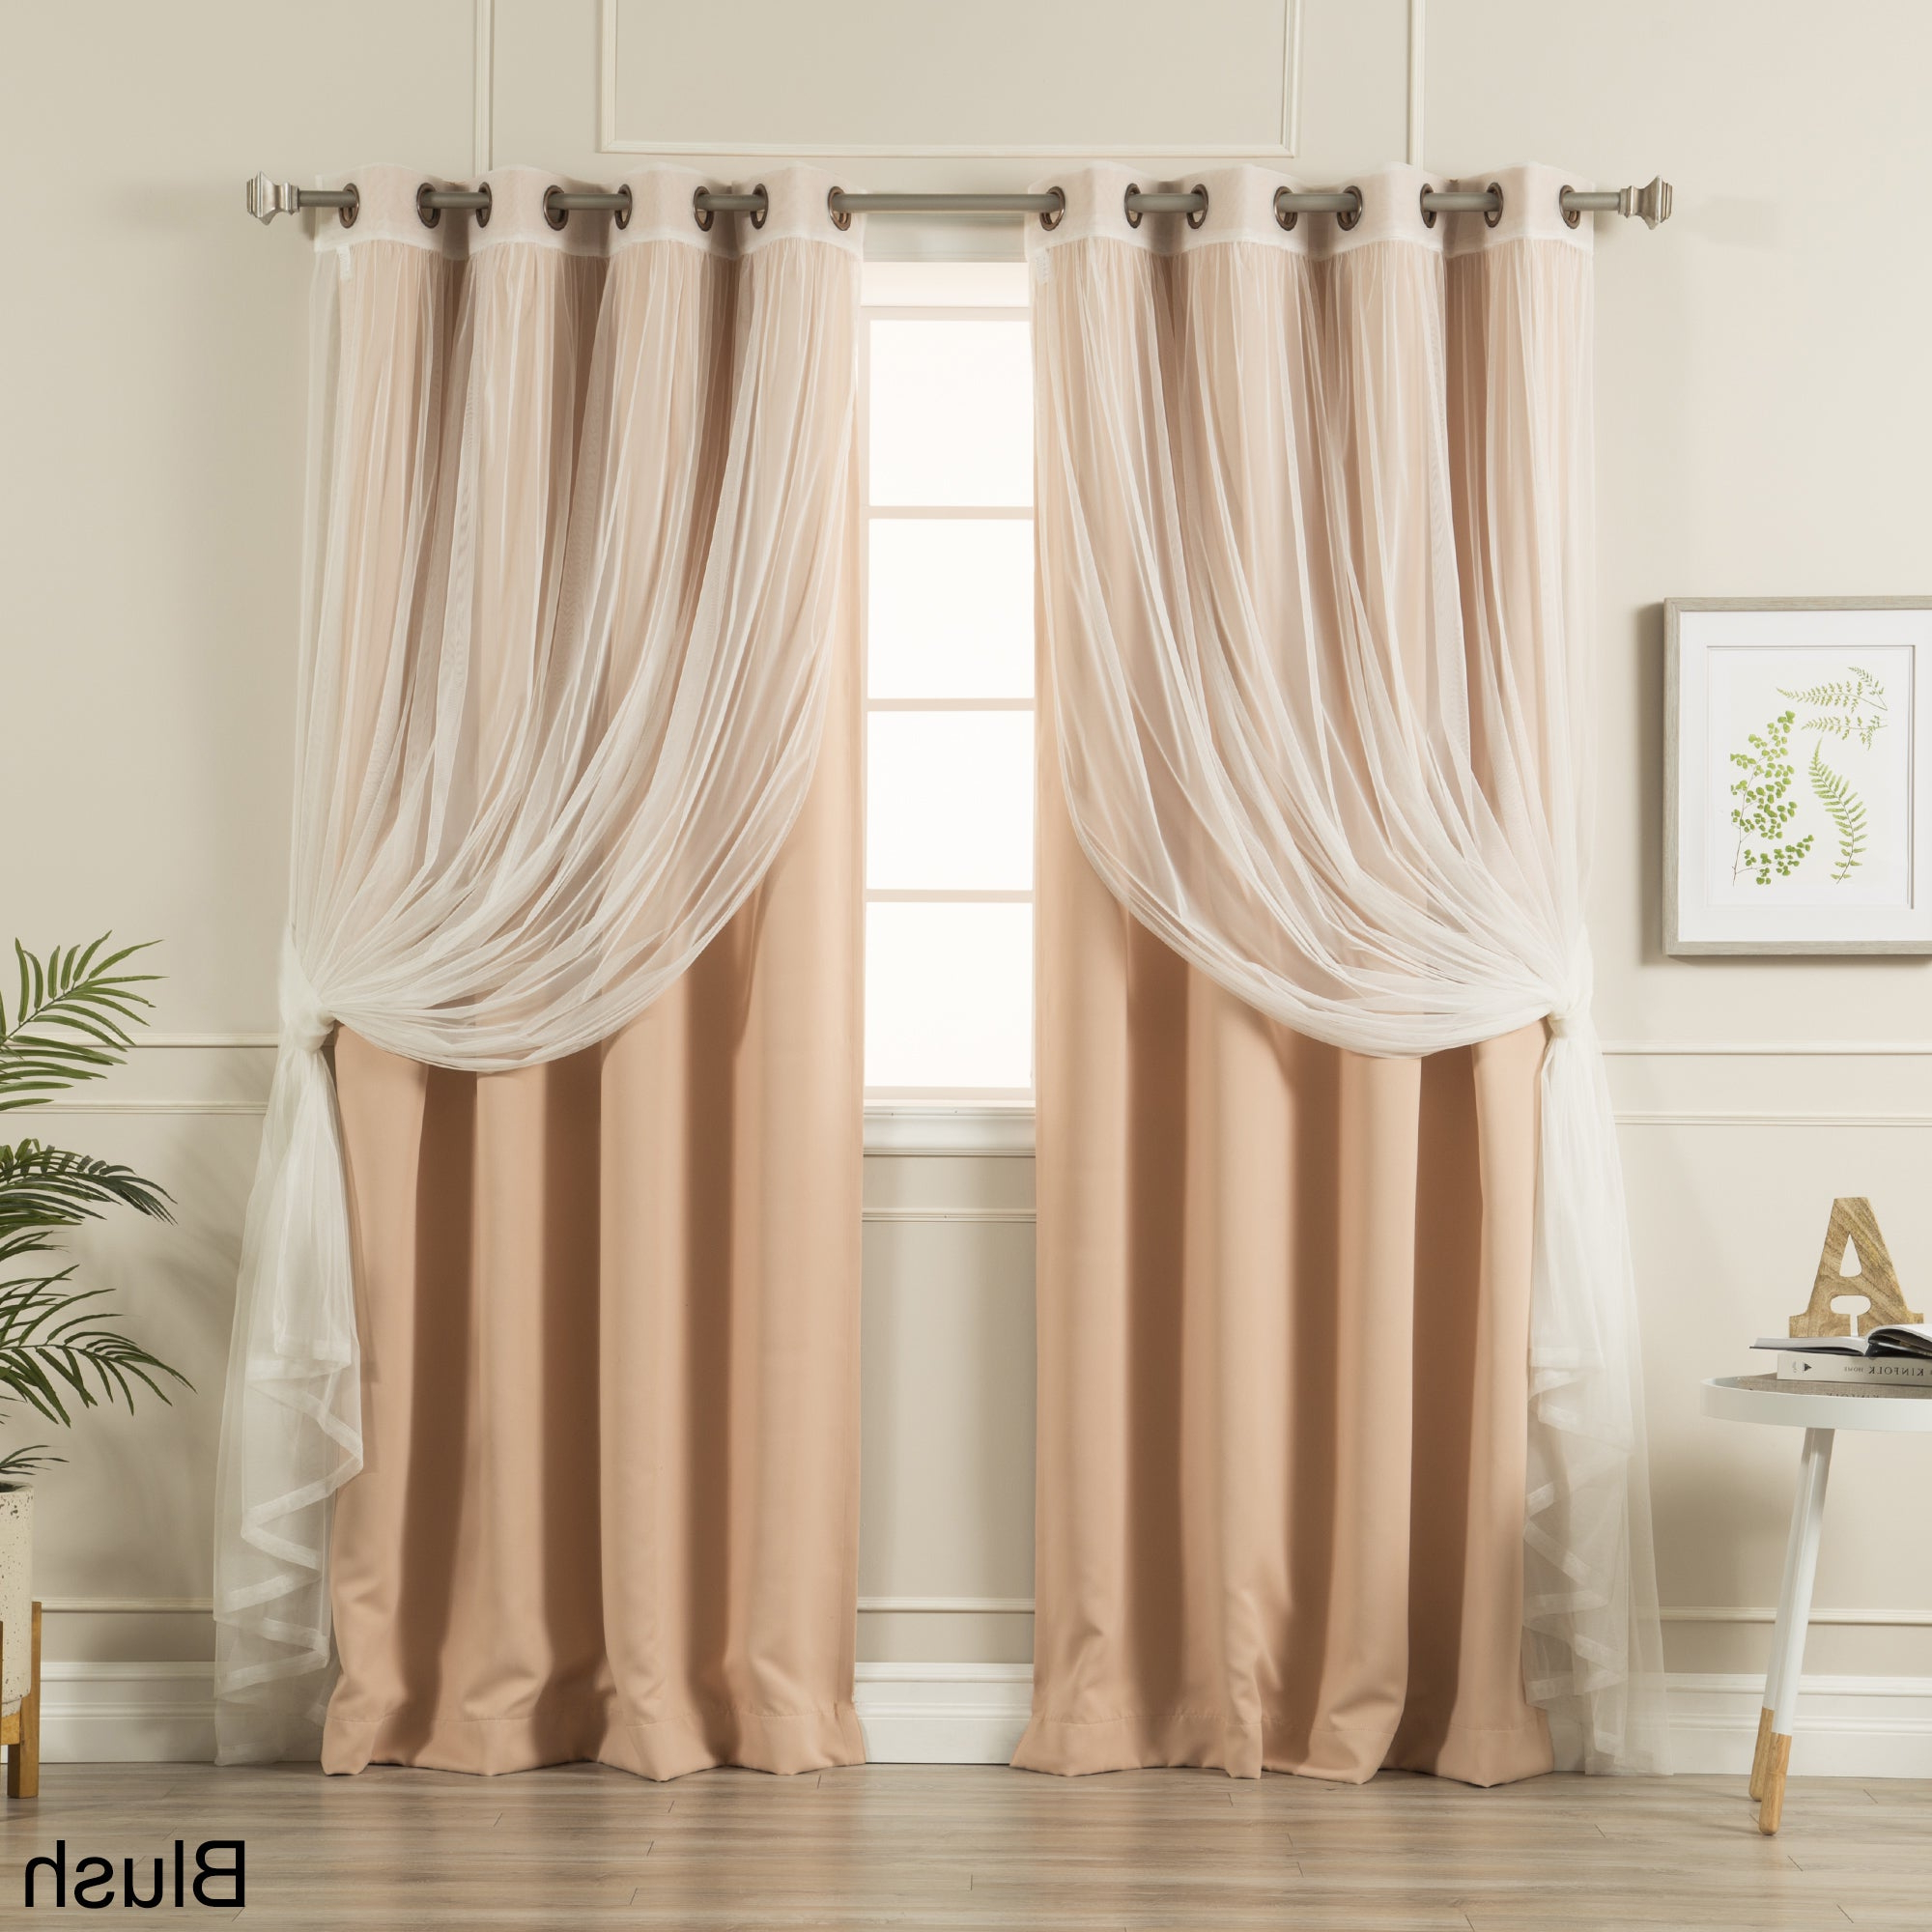 Trendy Mix And Match Blackout Tulle Lace Sheer Curtain Panel Sets Pertaining To Aurora Home Mix And Match Blackout Tulle Lace Sheer 4 Piece Curtain Panel Set (View 5 of 20)